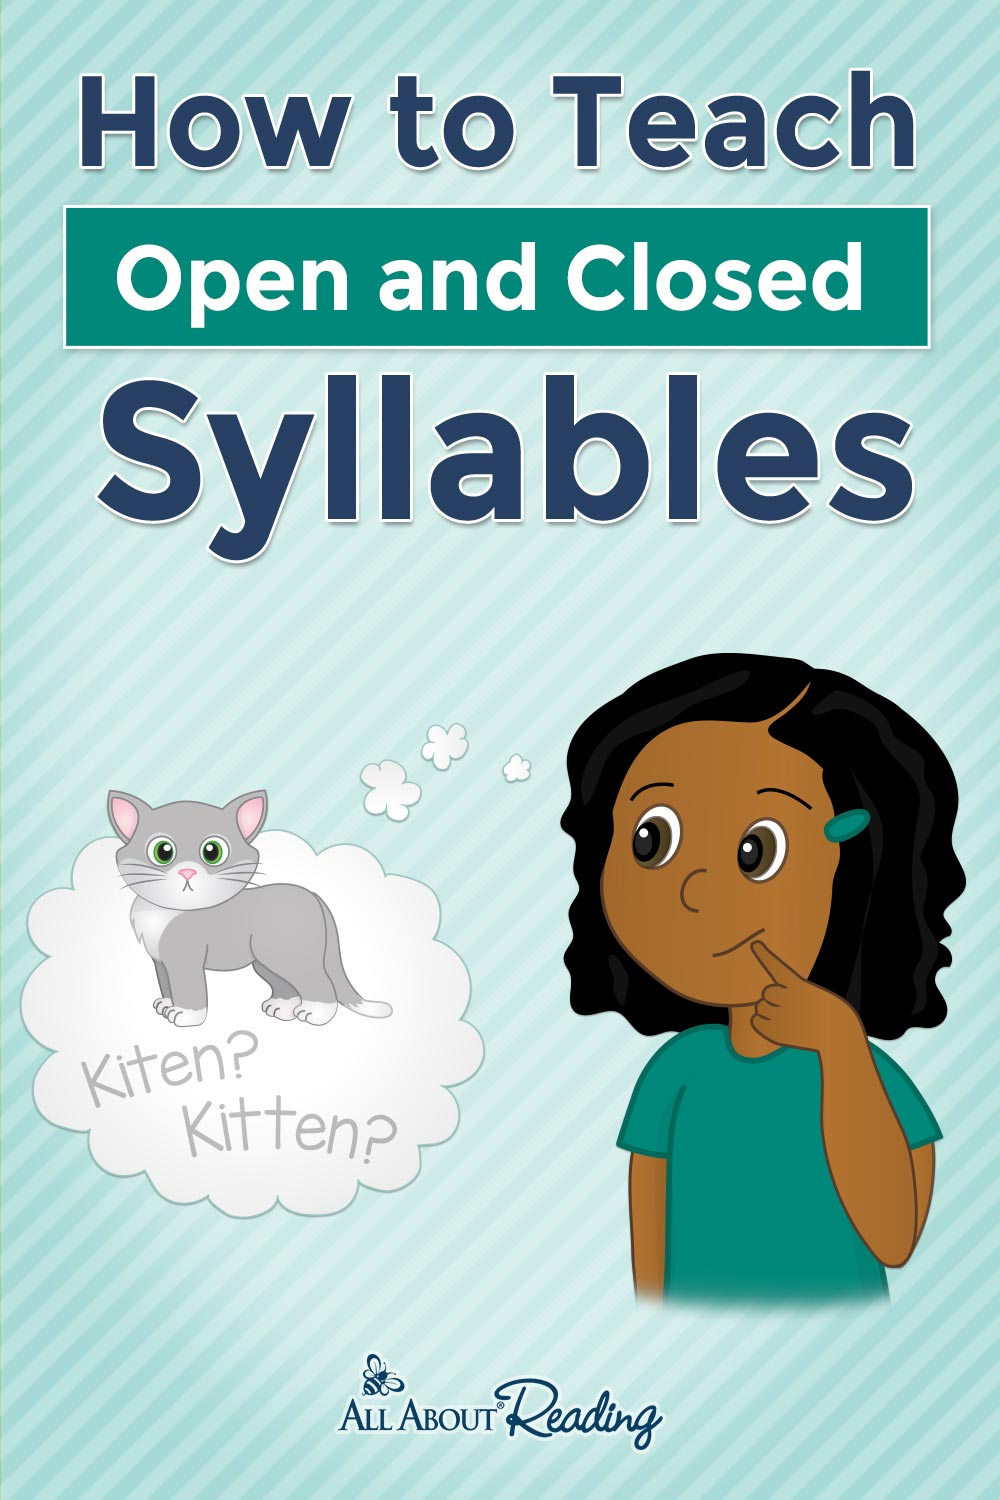 how to teach syllables pinterest graphic